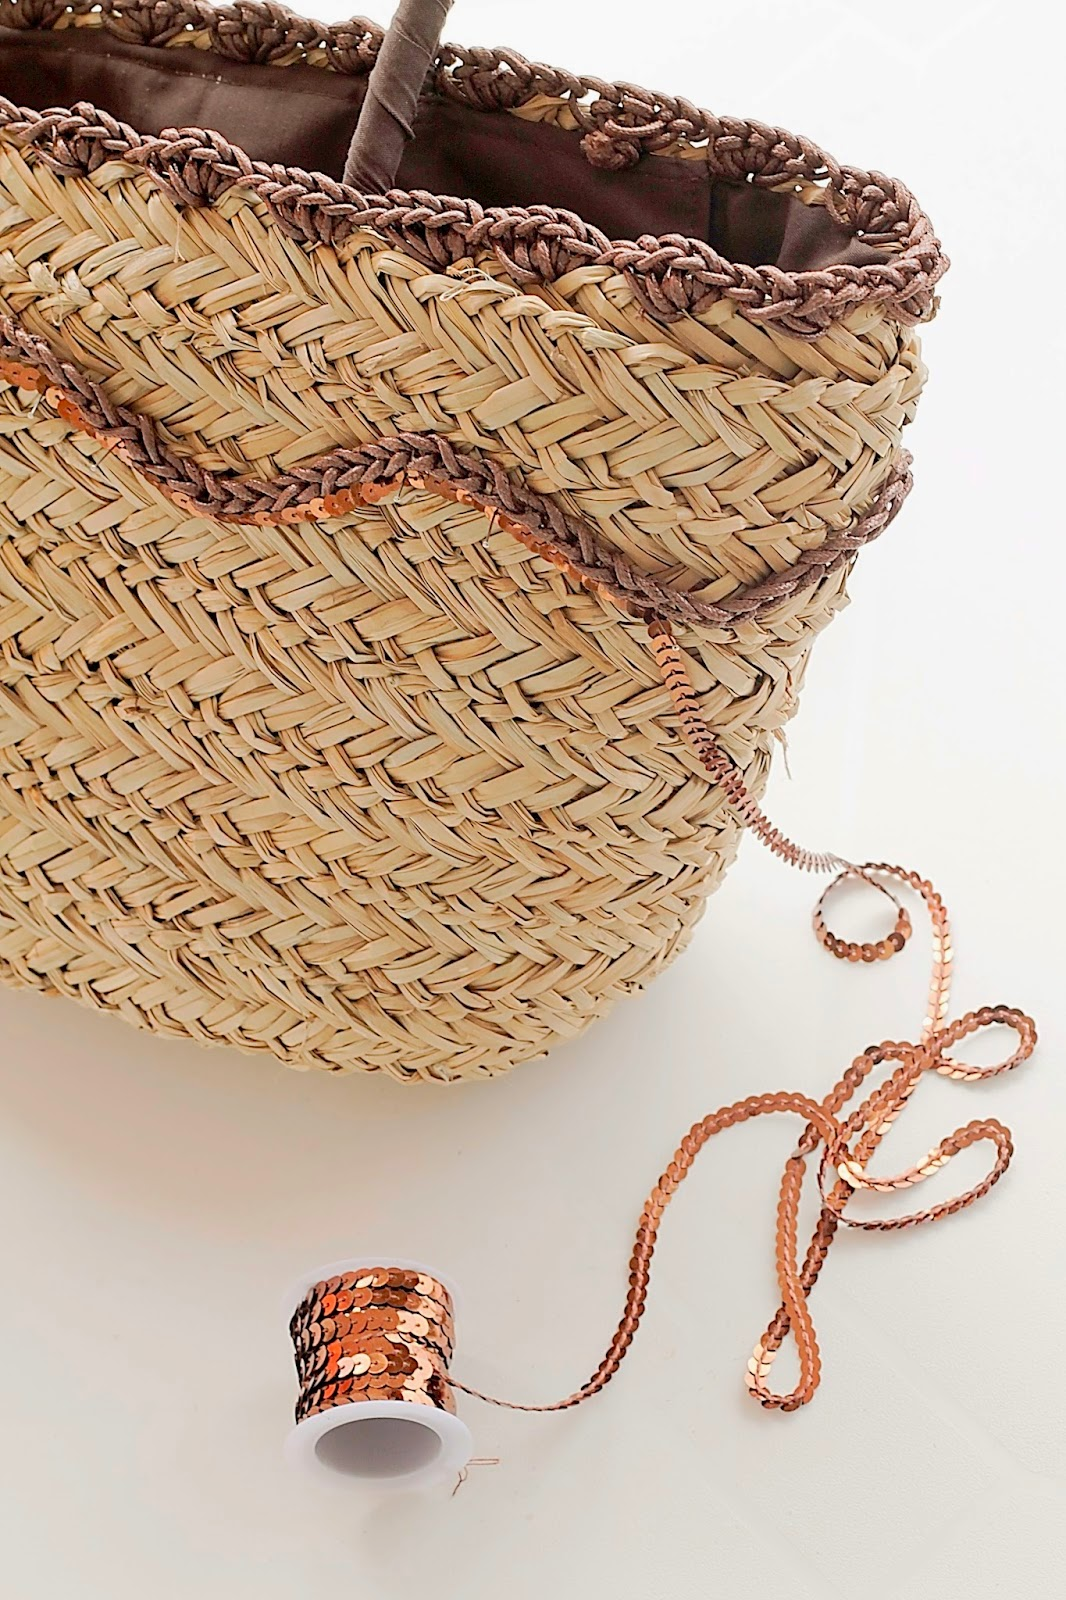 Diy capazo de paja y crochet / Diy straw bag and crochet